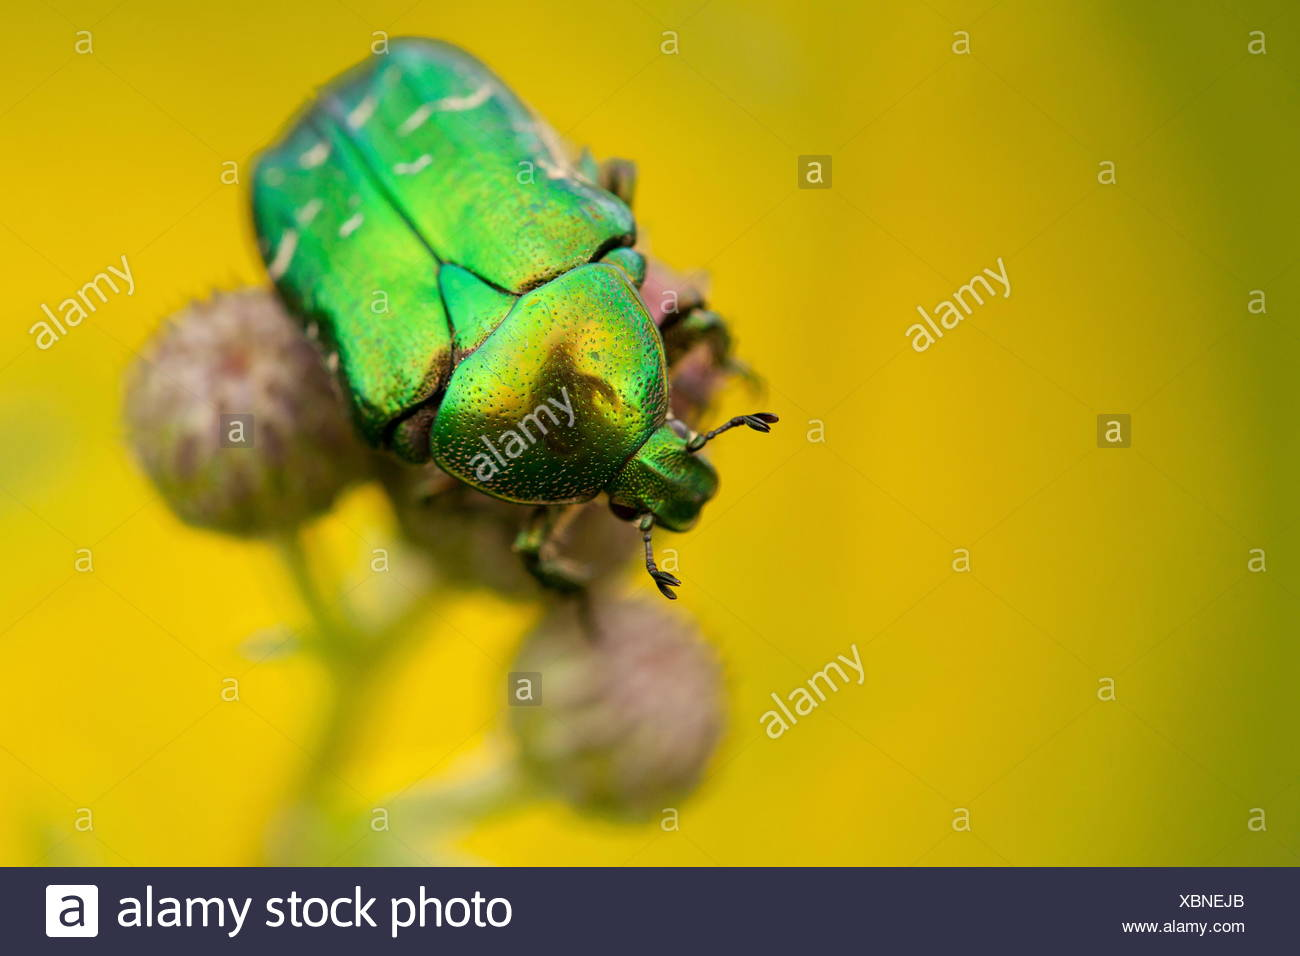 green rose chafer, Rhoen Mountains, Germany / (Cetonia aurata) - Stock Image